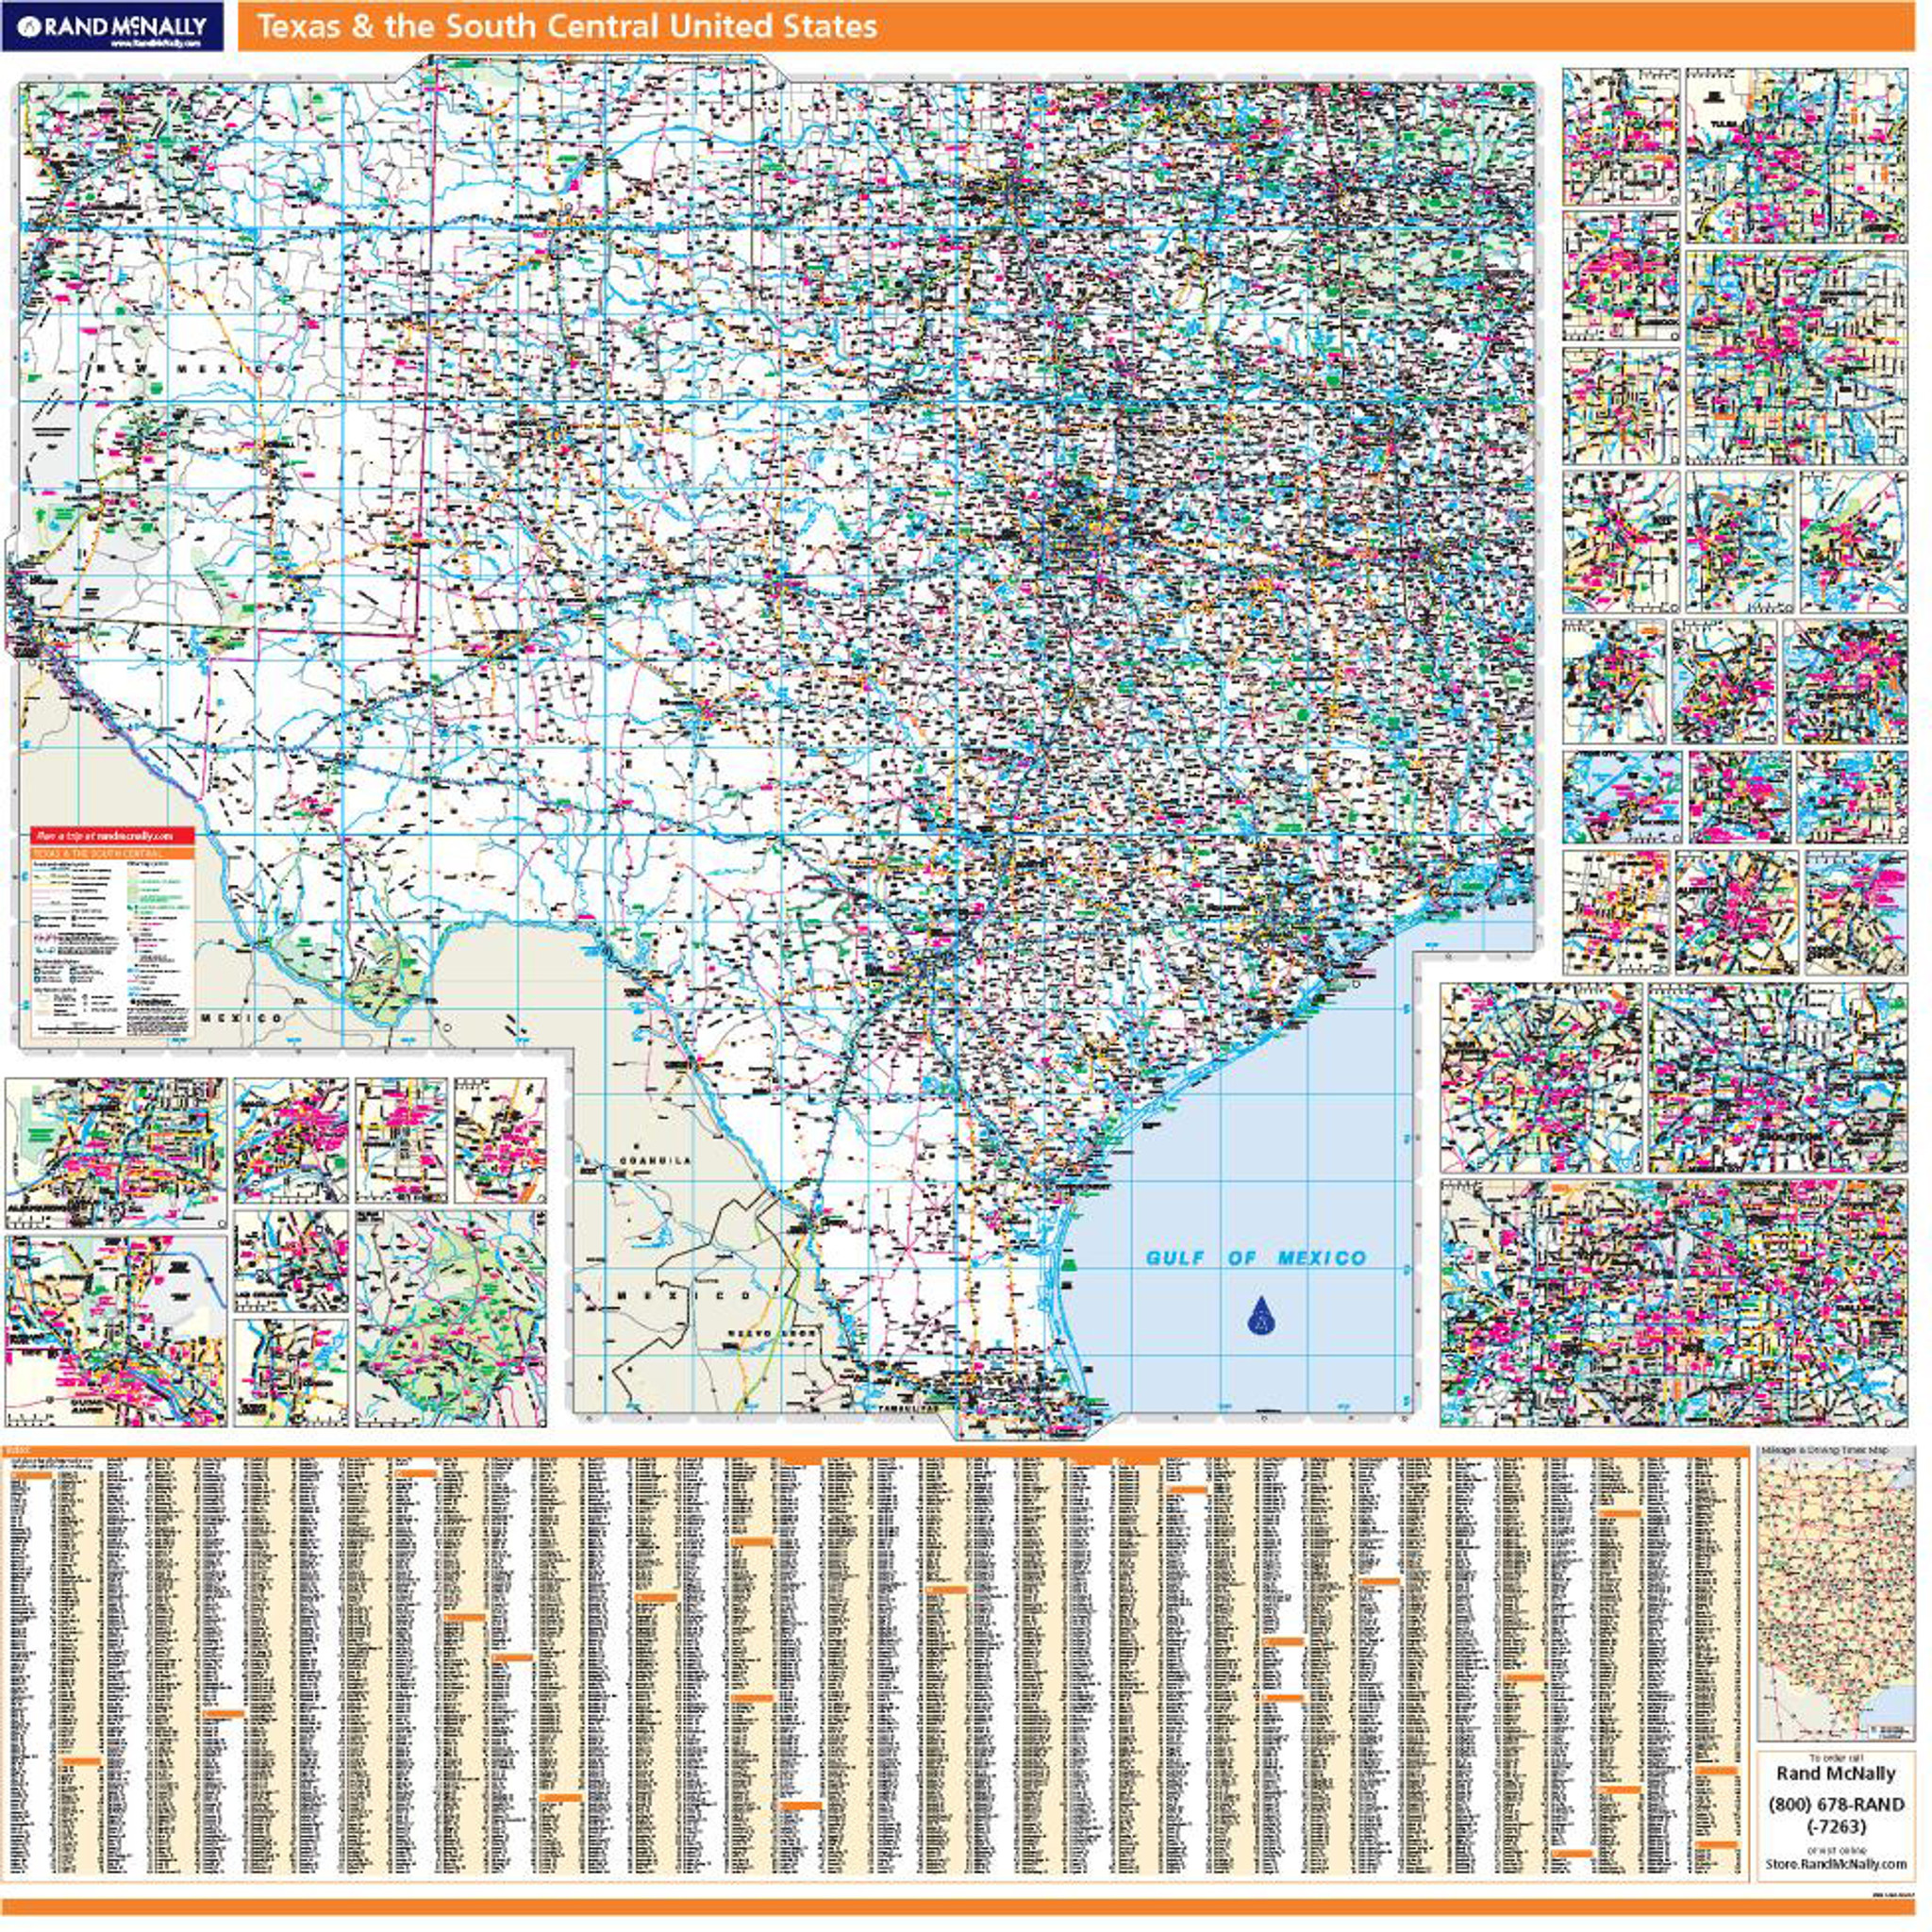 Free Map Of Texas.Proseries Wall Map Texas The South Central United States